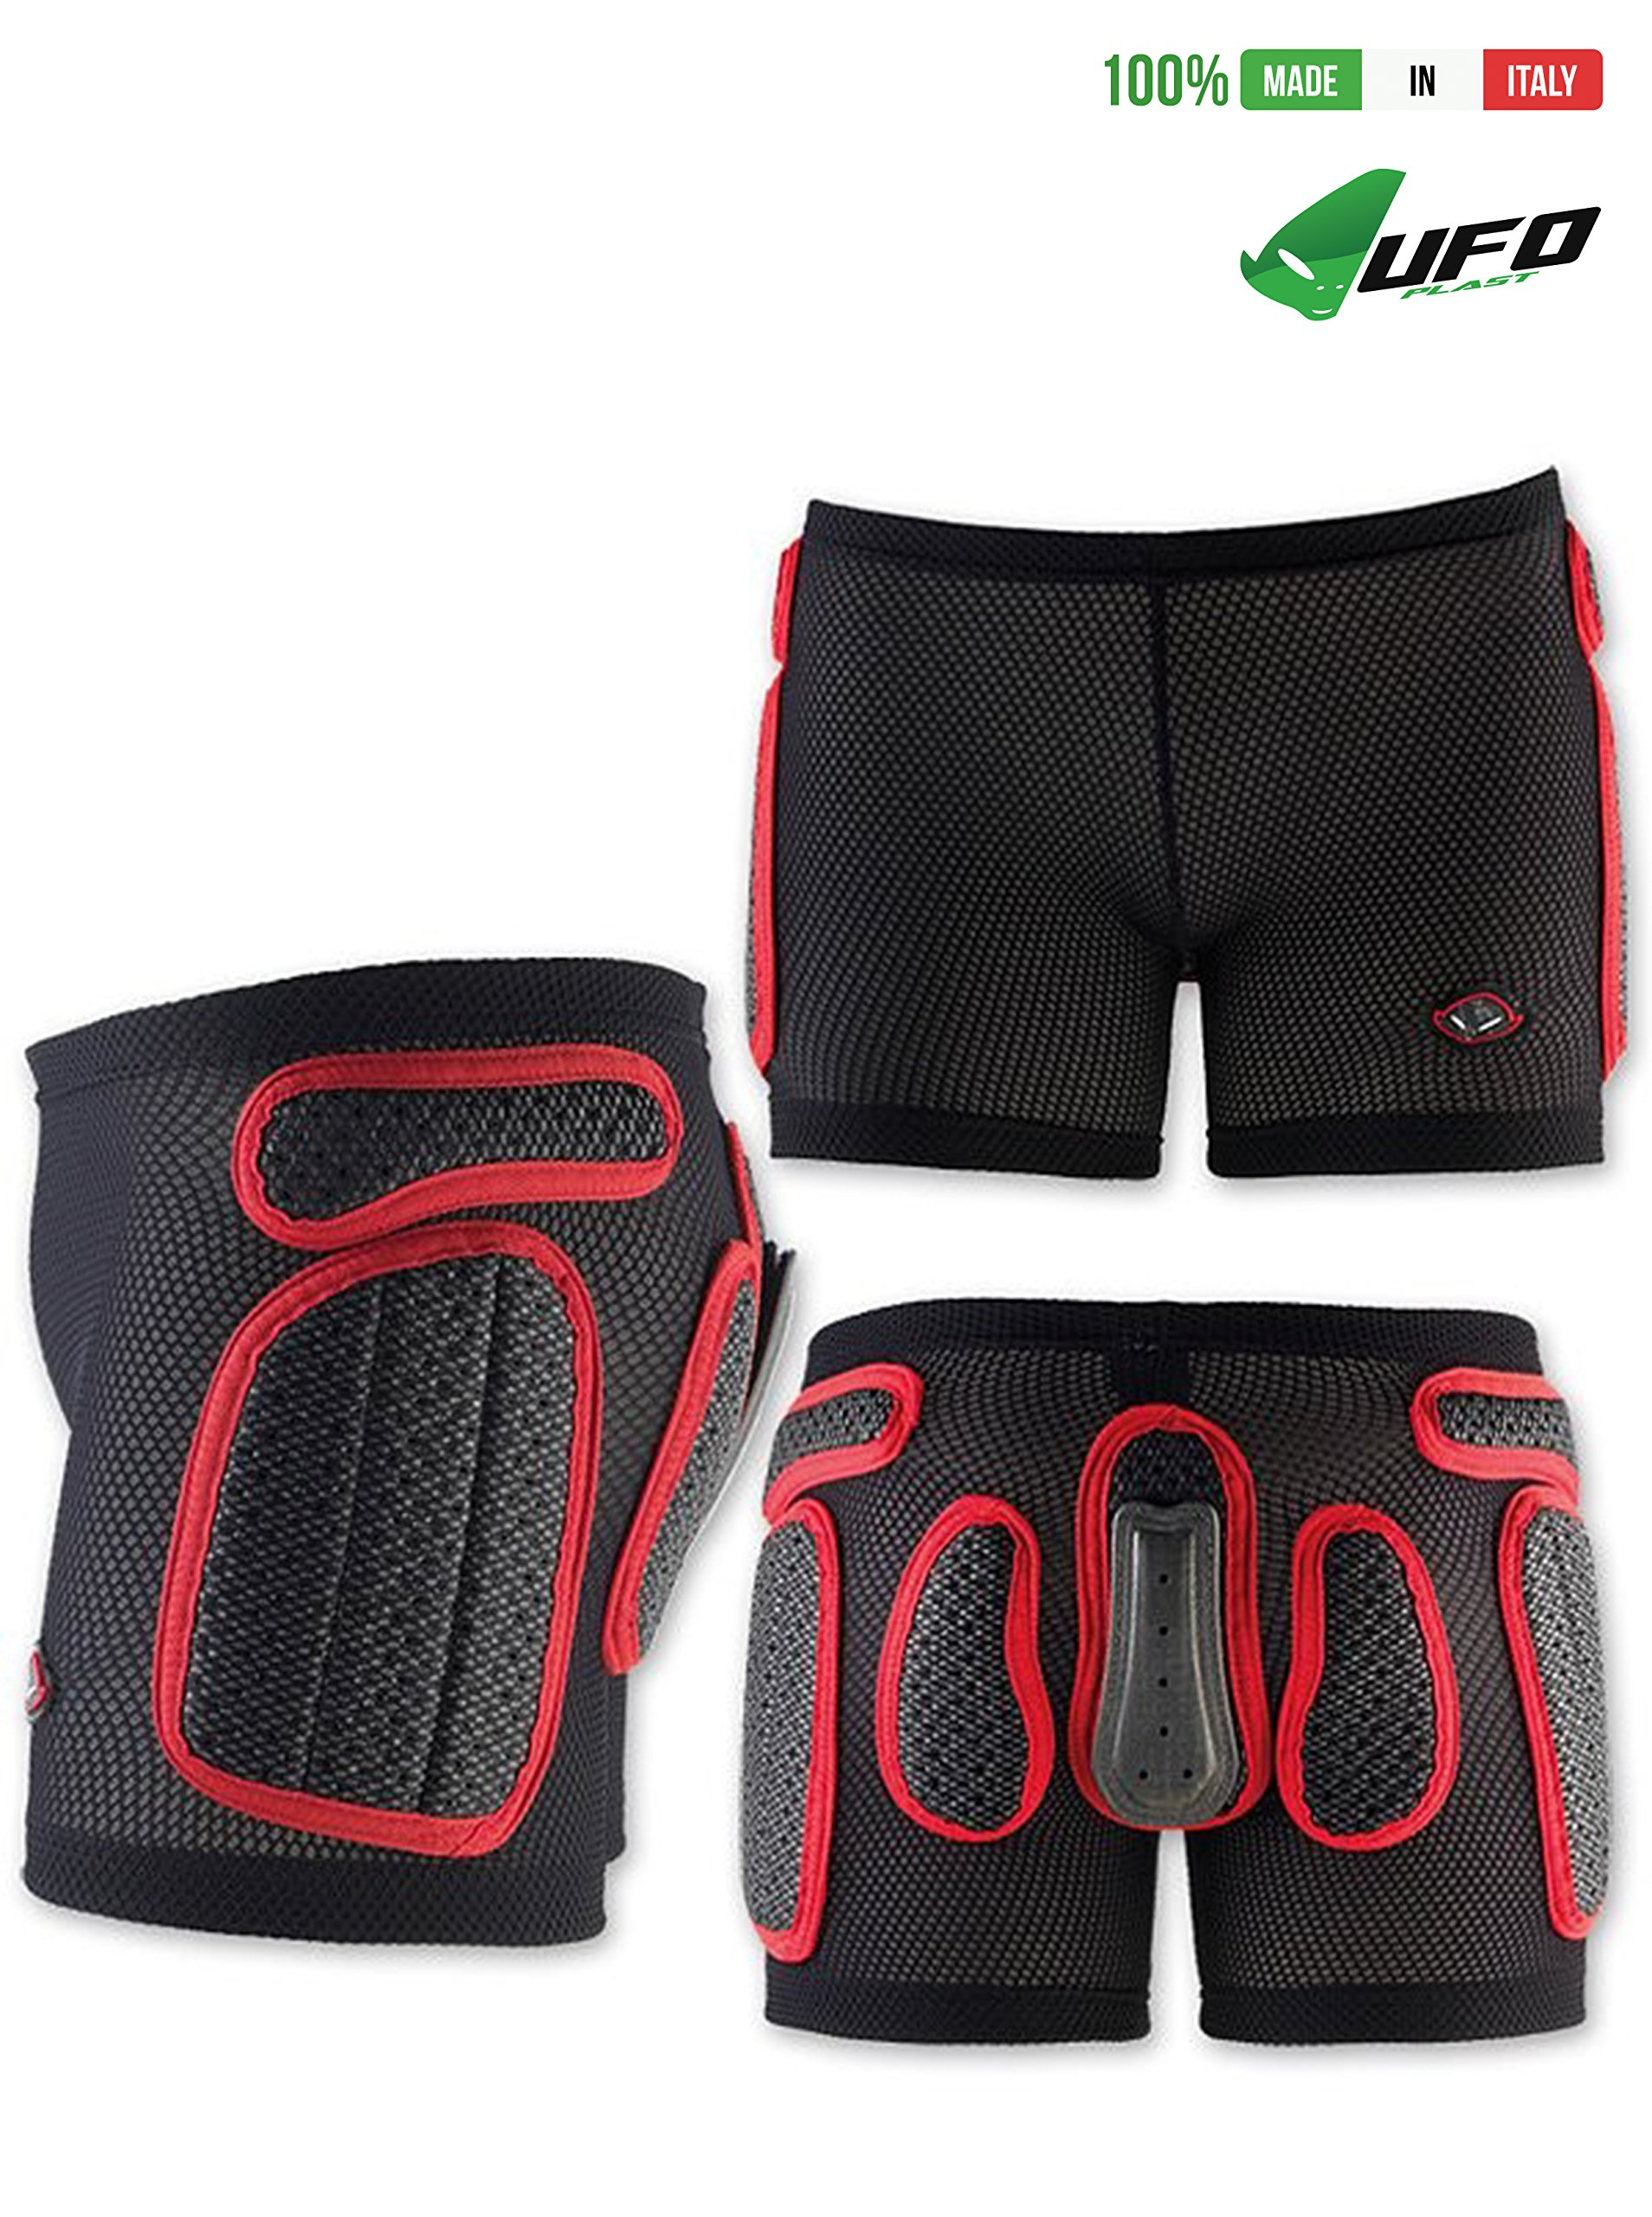 UFO PLAST Made in Italy SK09125 Soft Padded Shorts for Kids / Removable Back Protection / Airnet Material / For: Snowboard, Skateboard, Ski, Skating / Size: S / Color: Black with Red